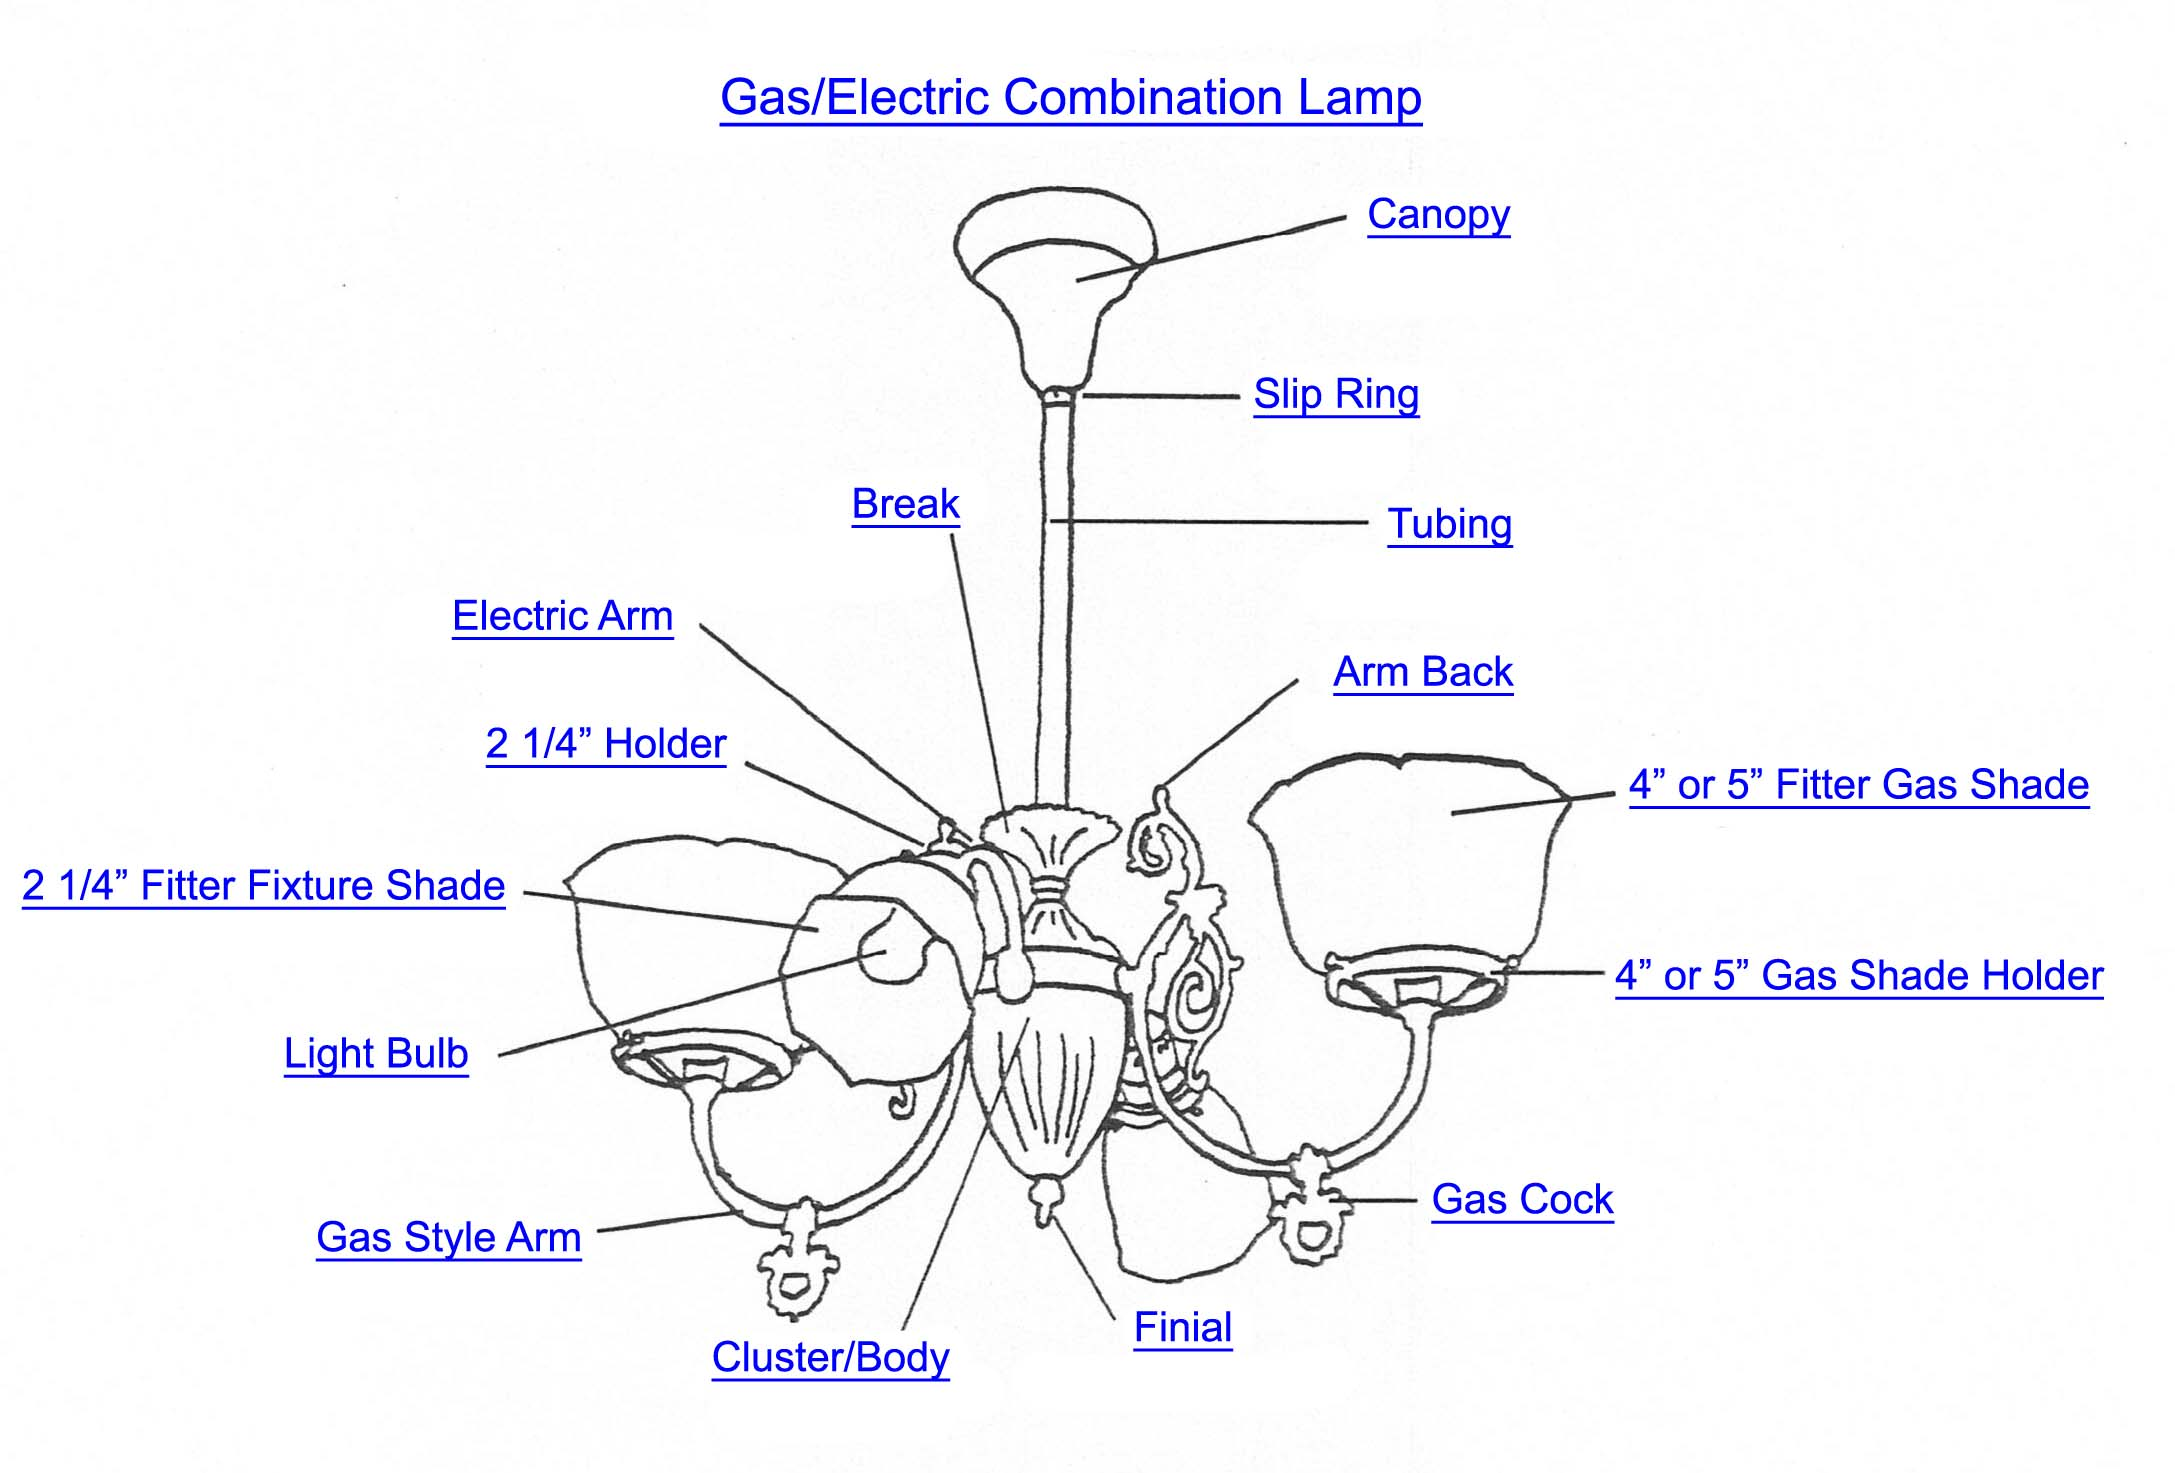 Gas electric combination lamp part index aloadofball Gallery